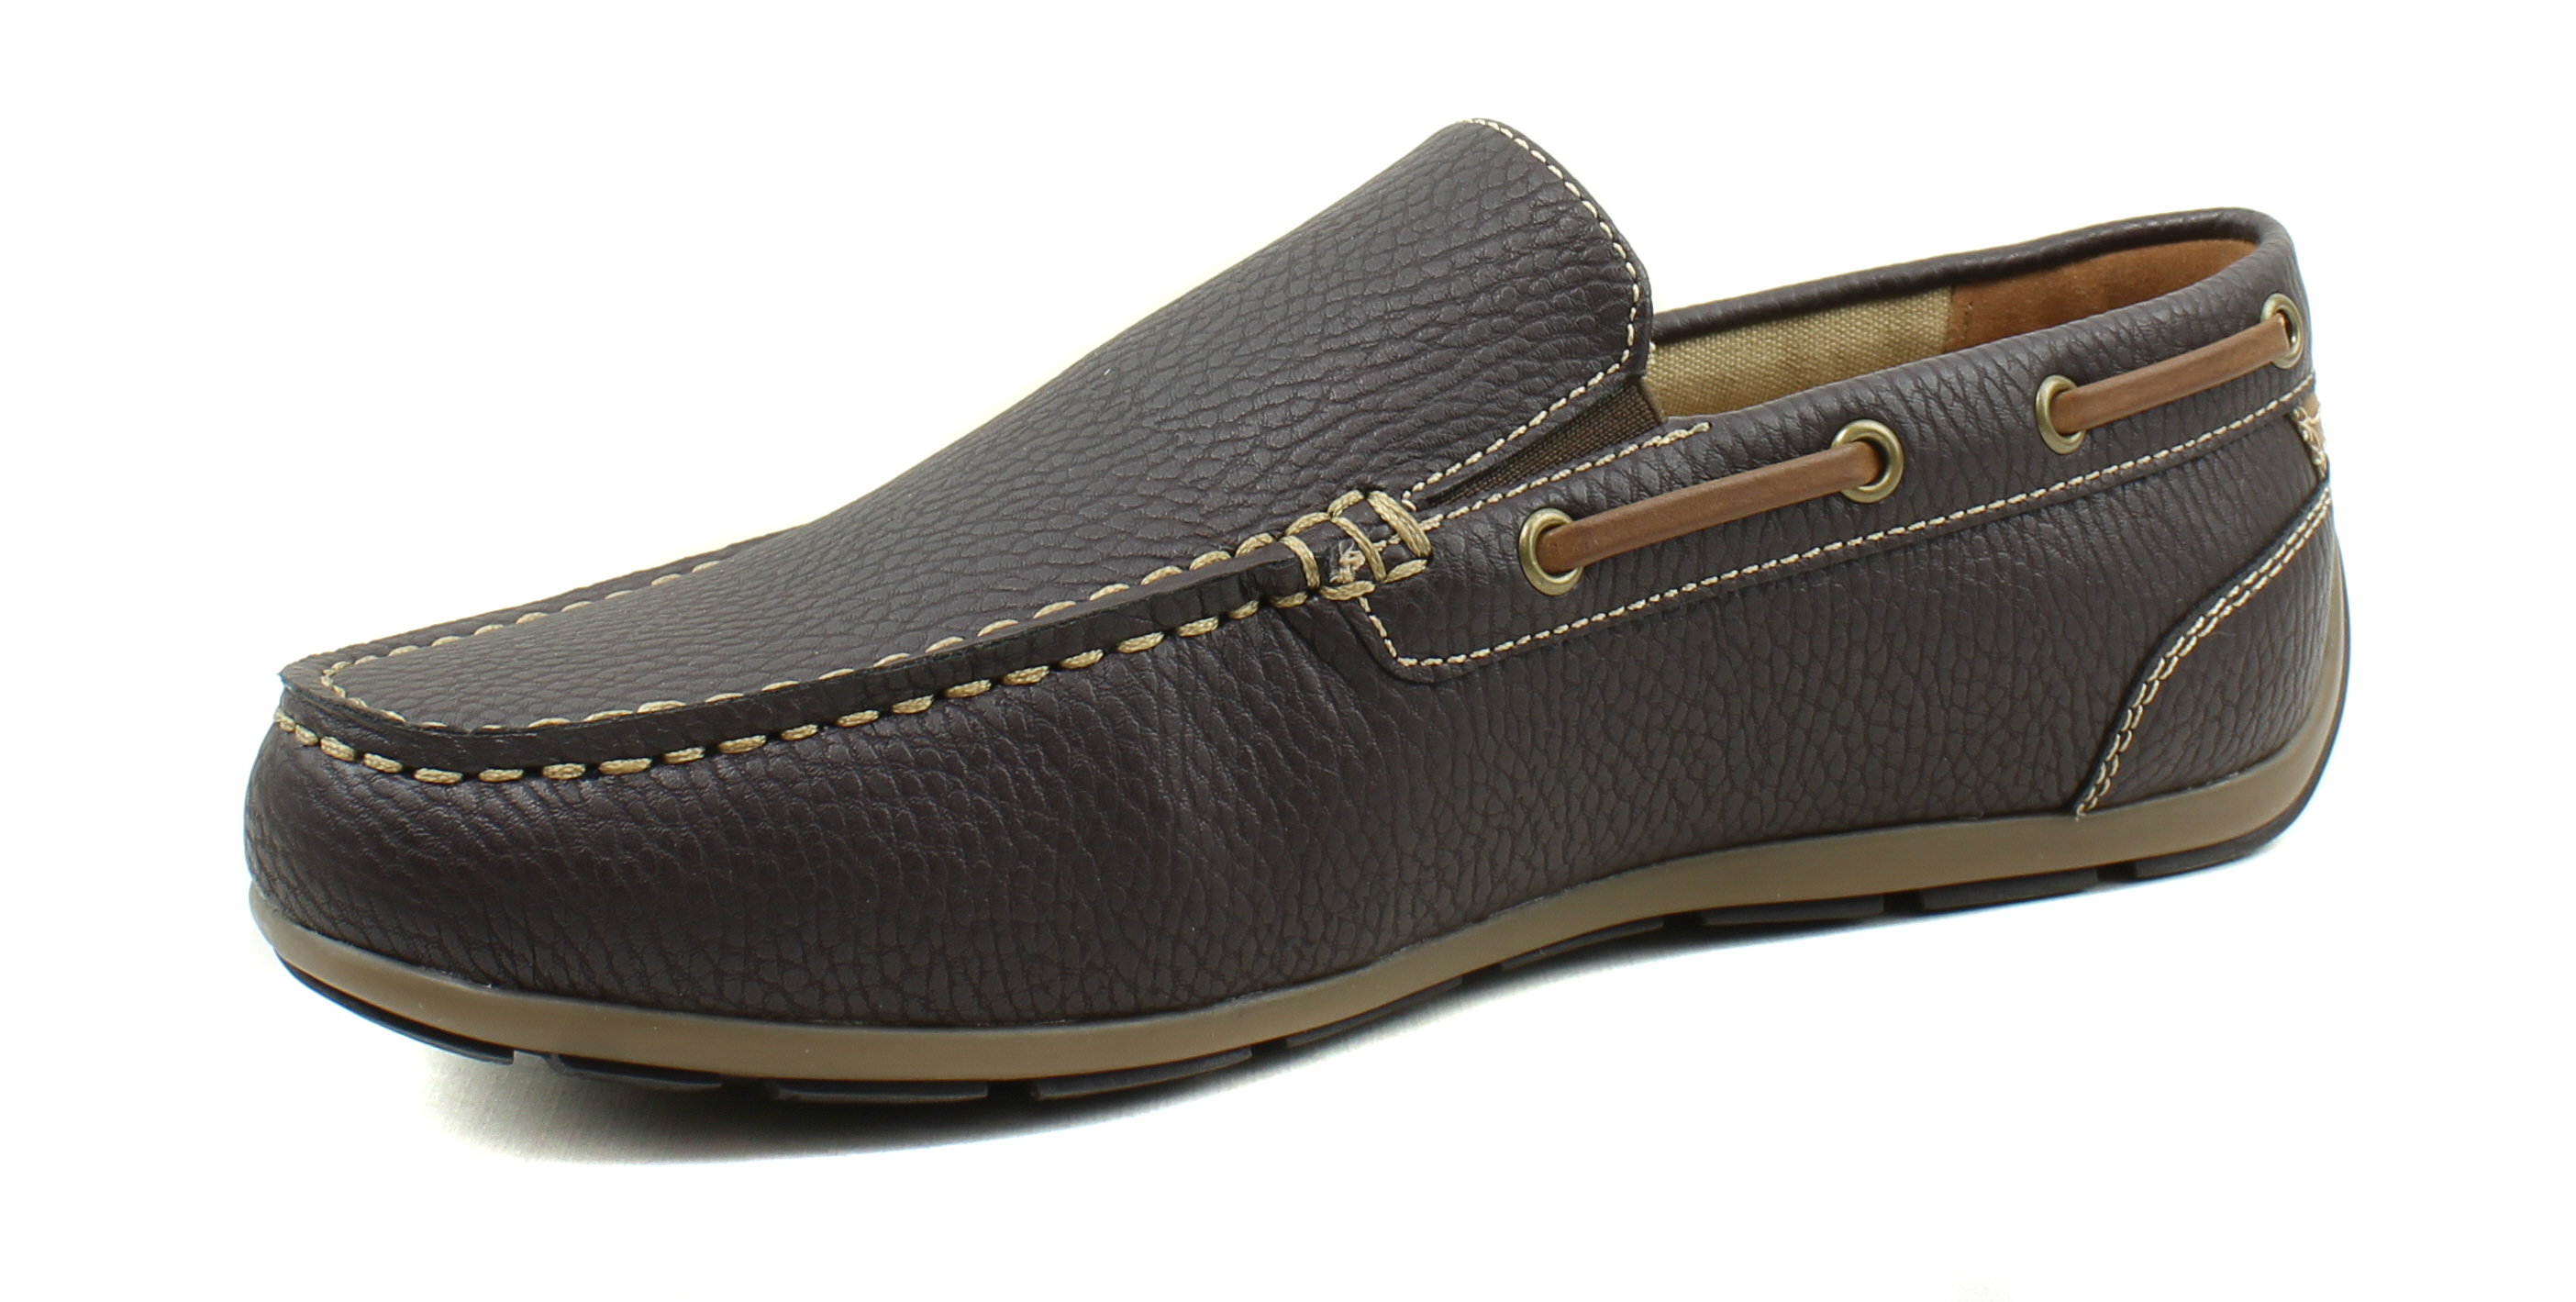 GBX-Mens-Ludlam-Casual-Moc-Toe-Slip-On-Boat-Shoe-Driving-Loafers thumbnail 11